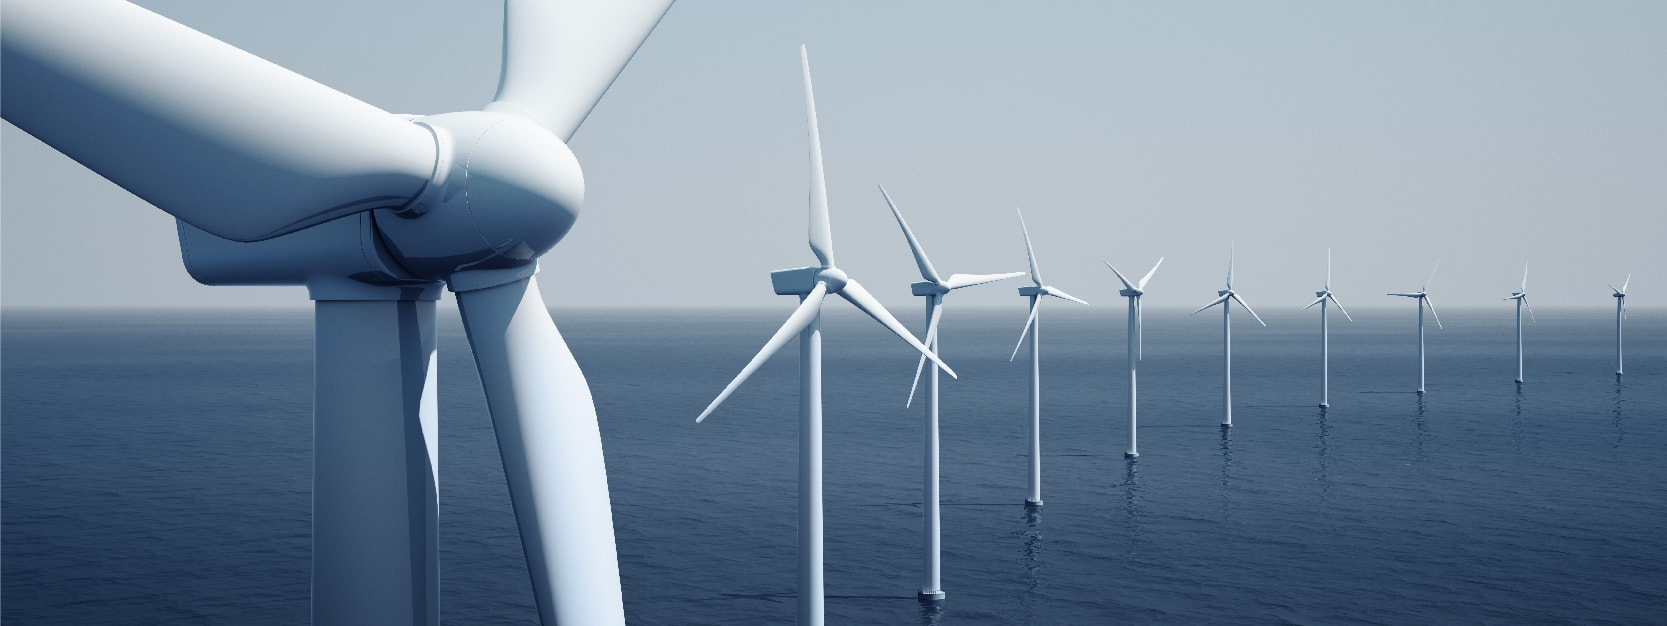 Windturbines on the ocean